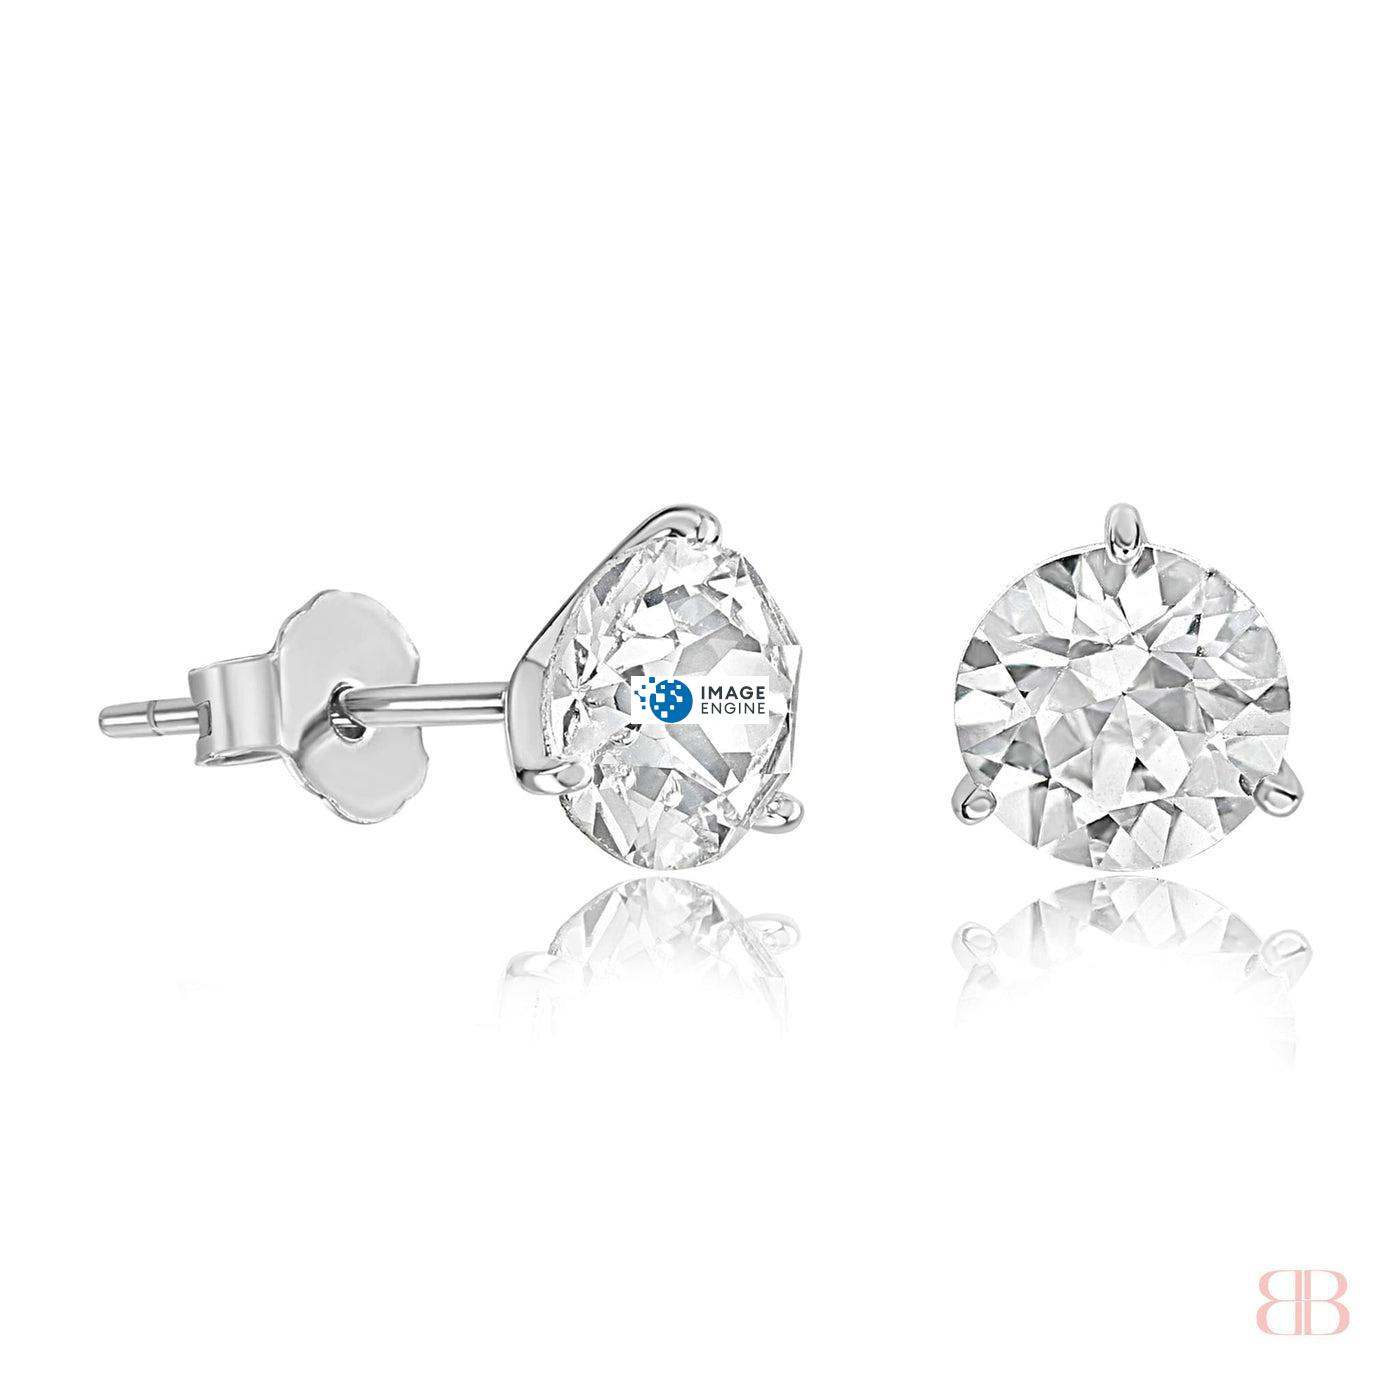 Swarovski Stud Earrings - Facing to the Right - 925 Sterling Silver